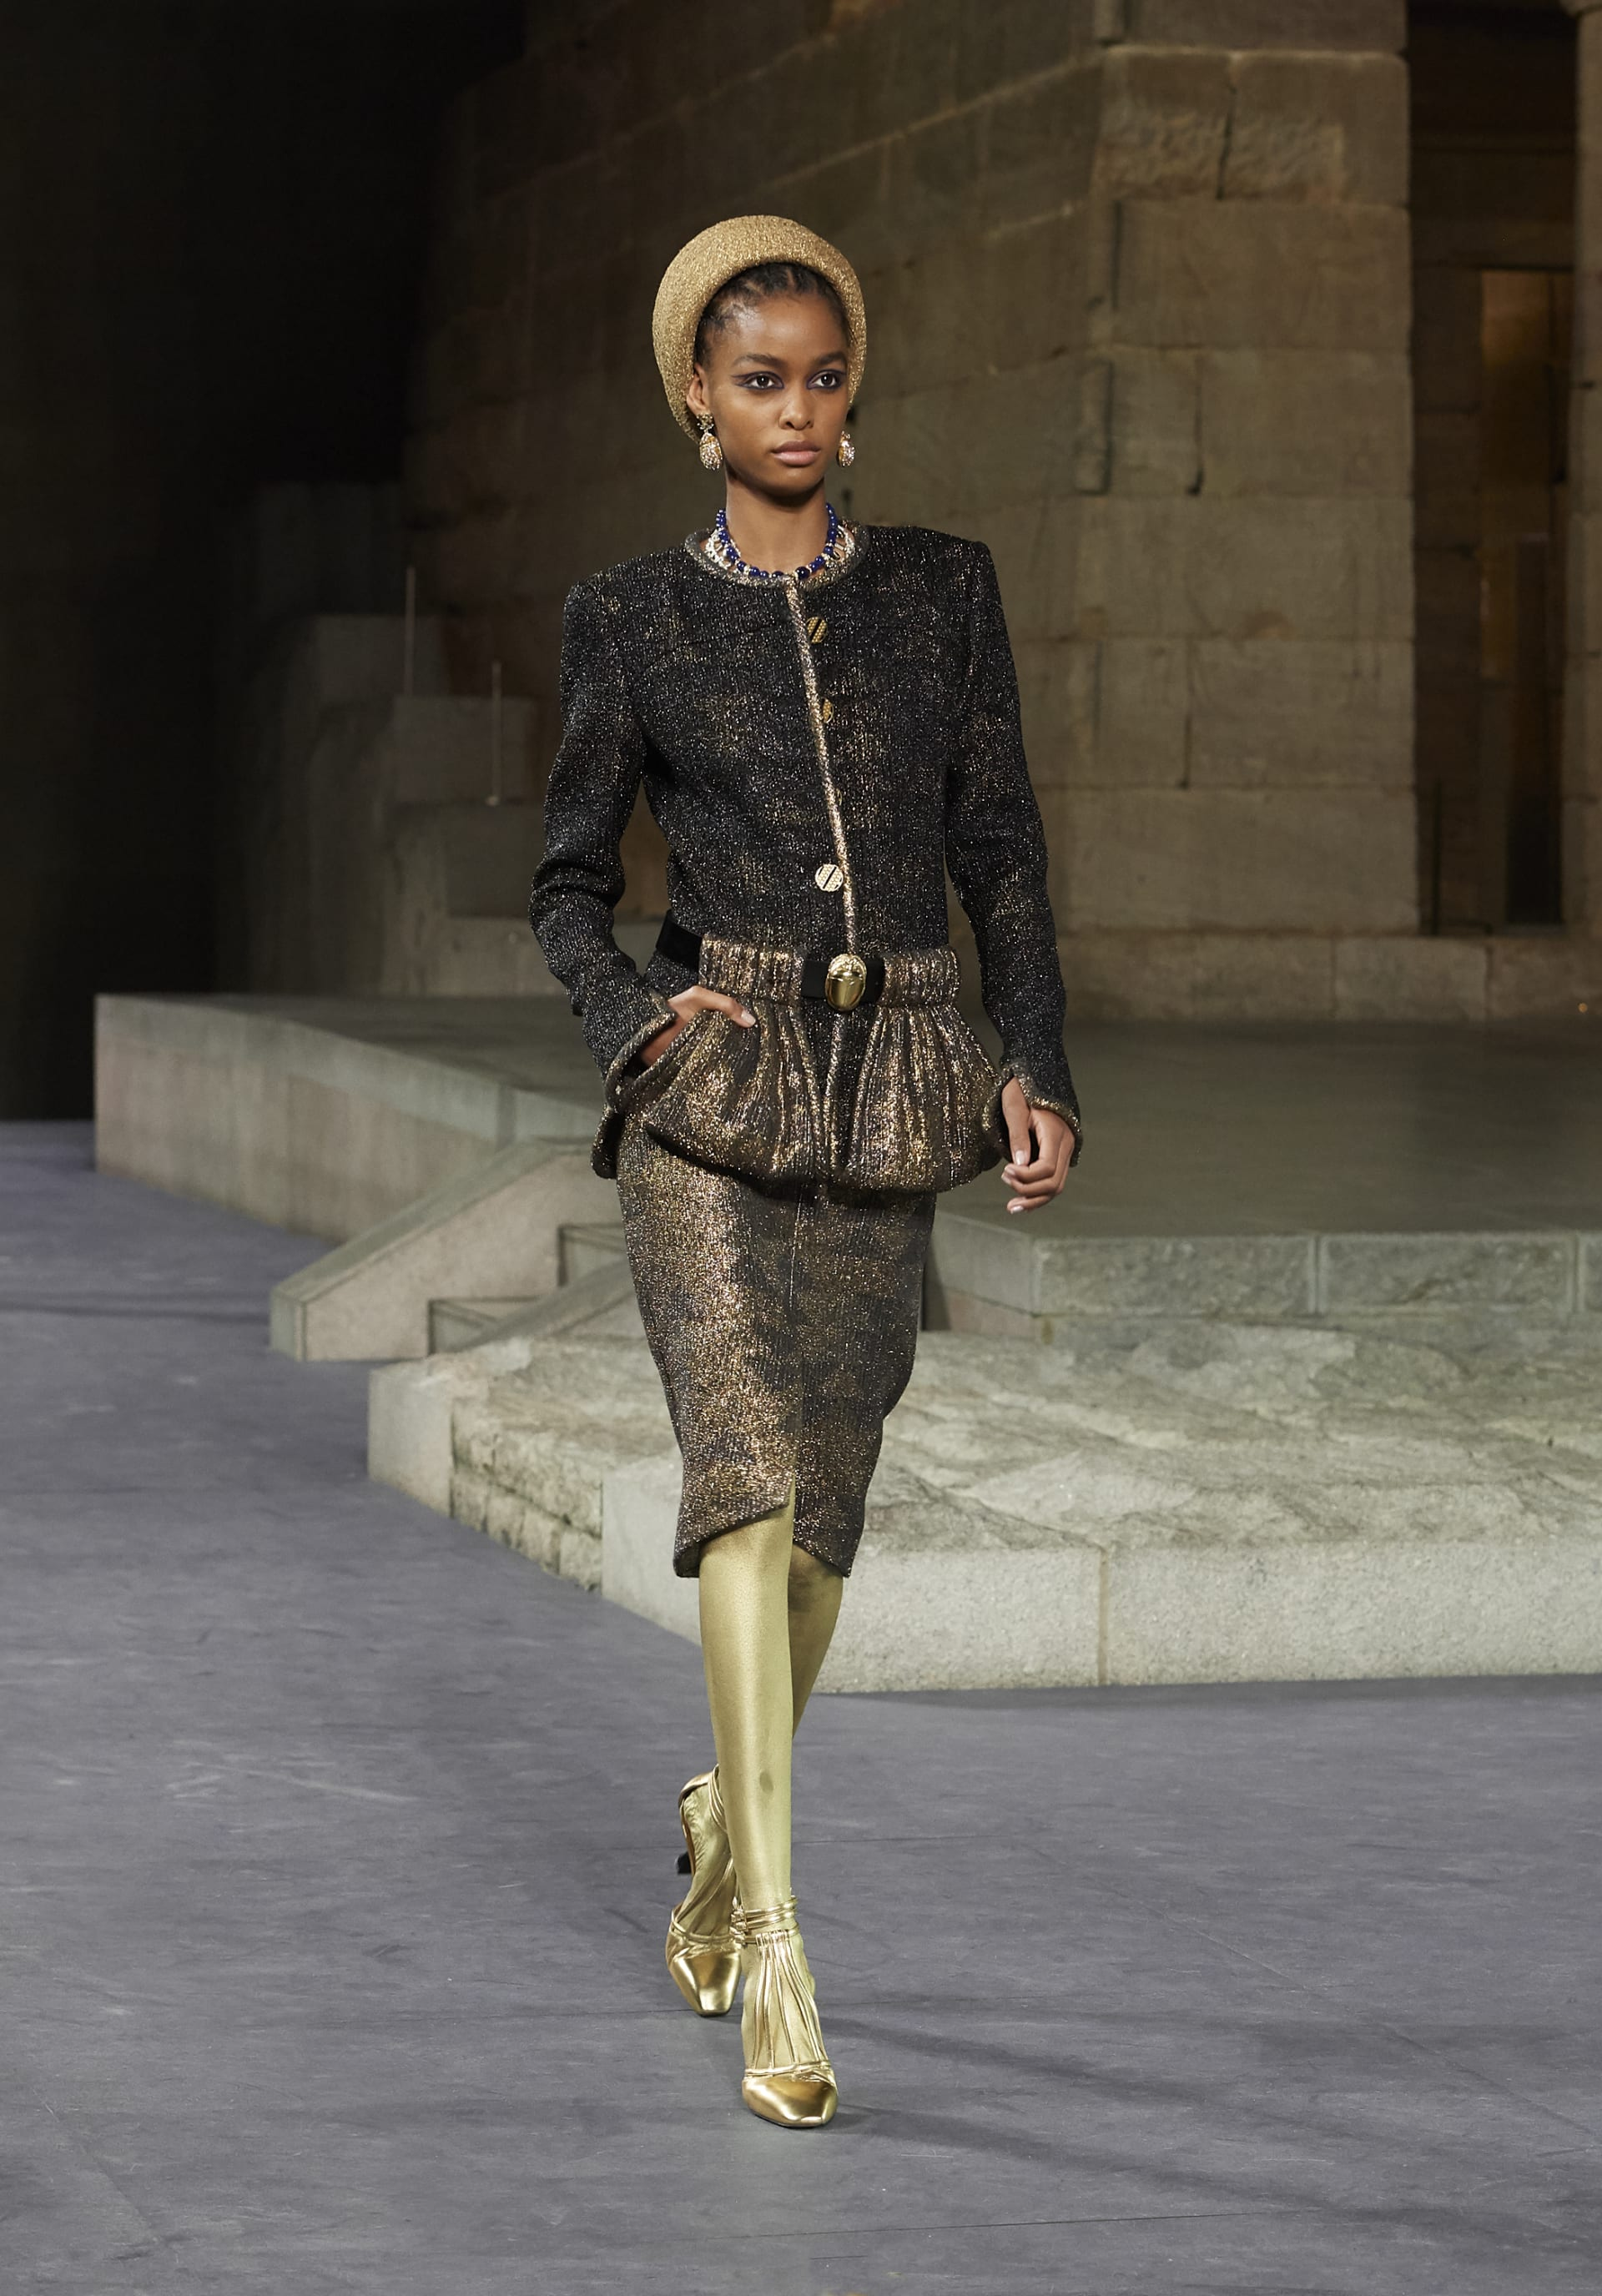 View 1 - Look 17 - Métiers d'Art Paris-New York 2018/19